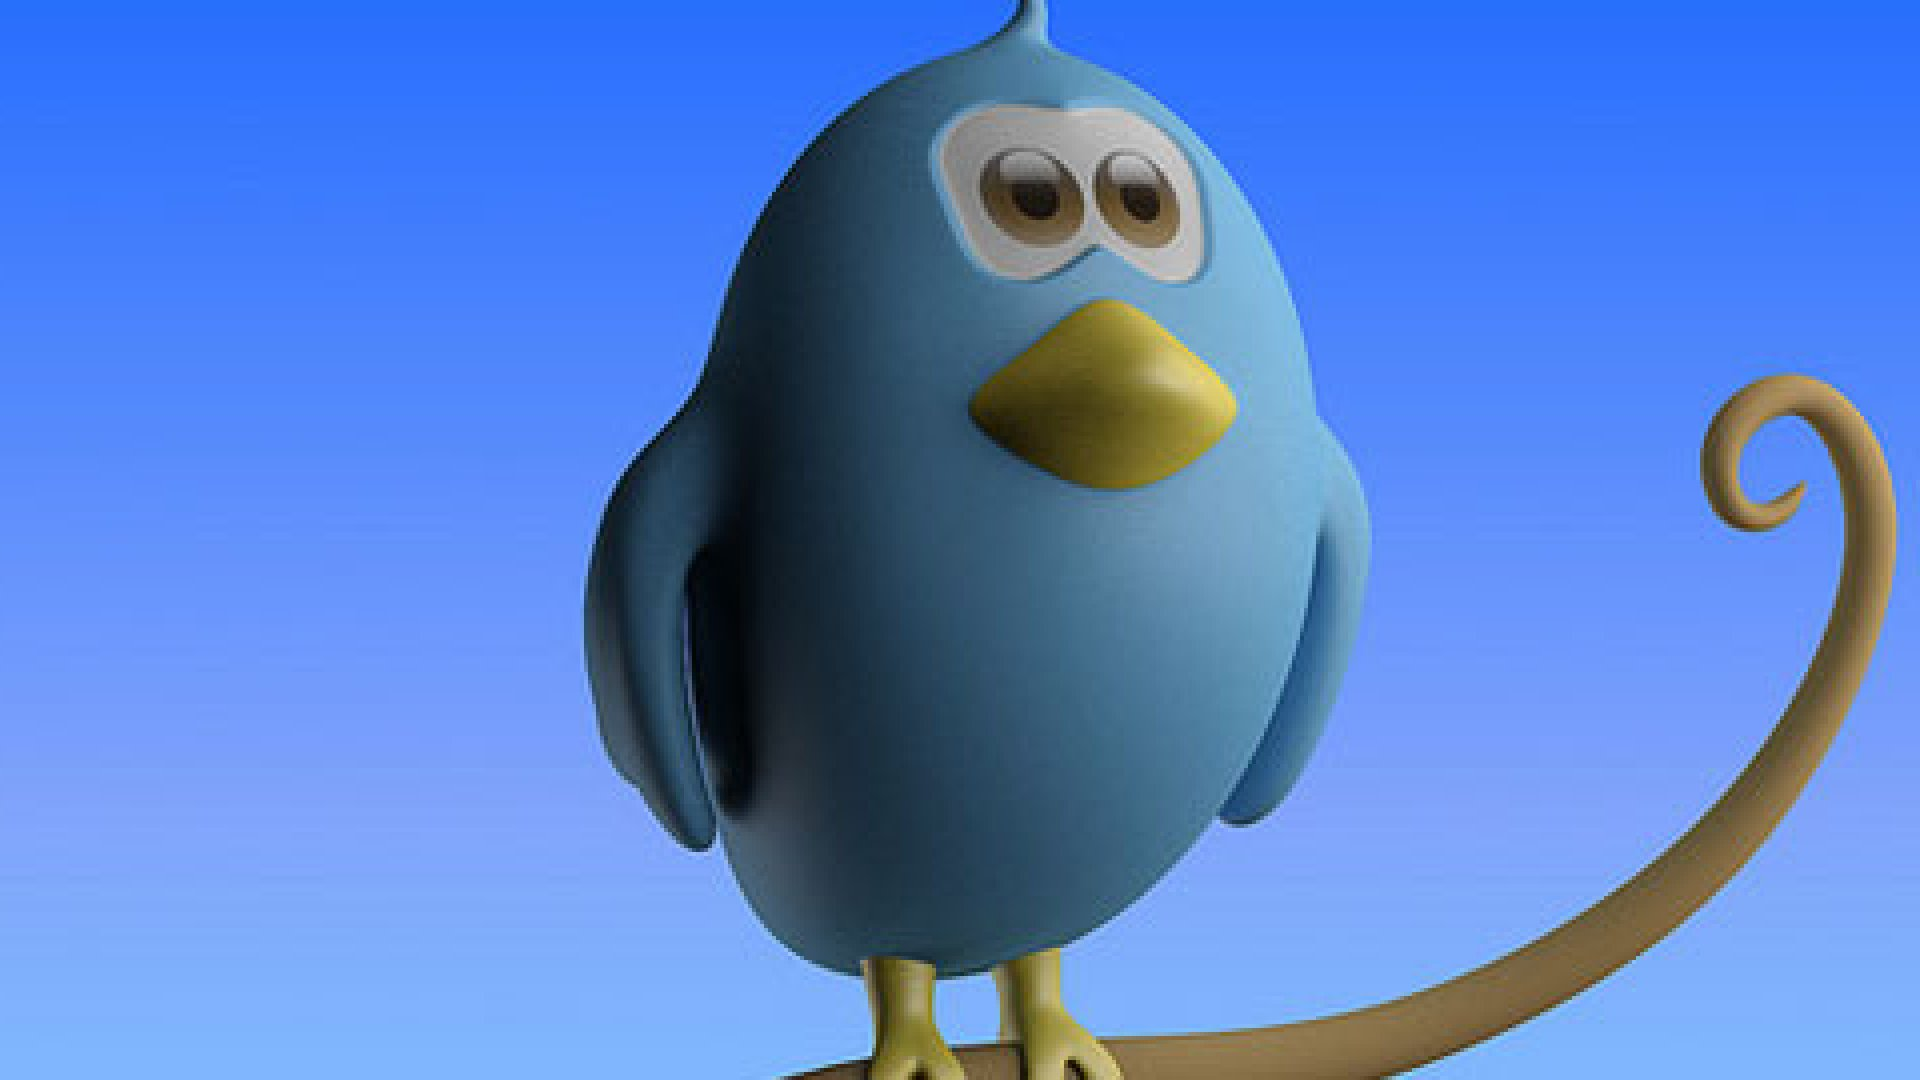 6 Ways to Get More (Real) Twitter Followers